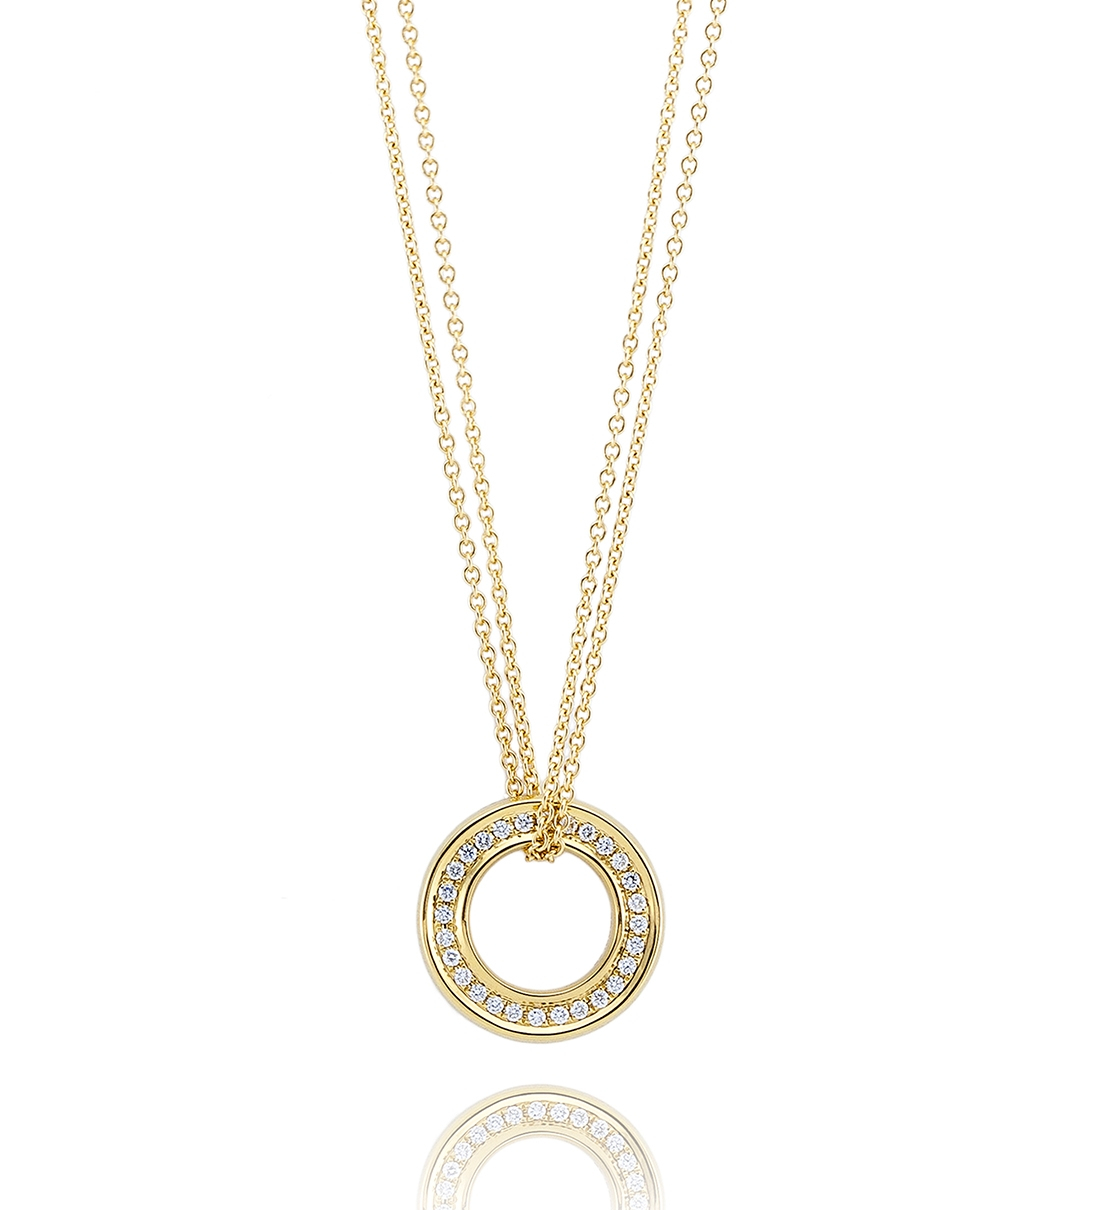 Medium Roulette Yellow Gold Diamond Pendant | Boodles For Newest Medium Diamond Necklaces (View 3 of 25)